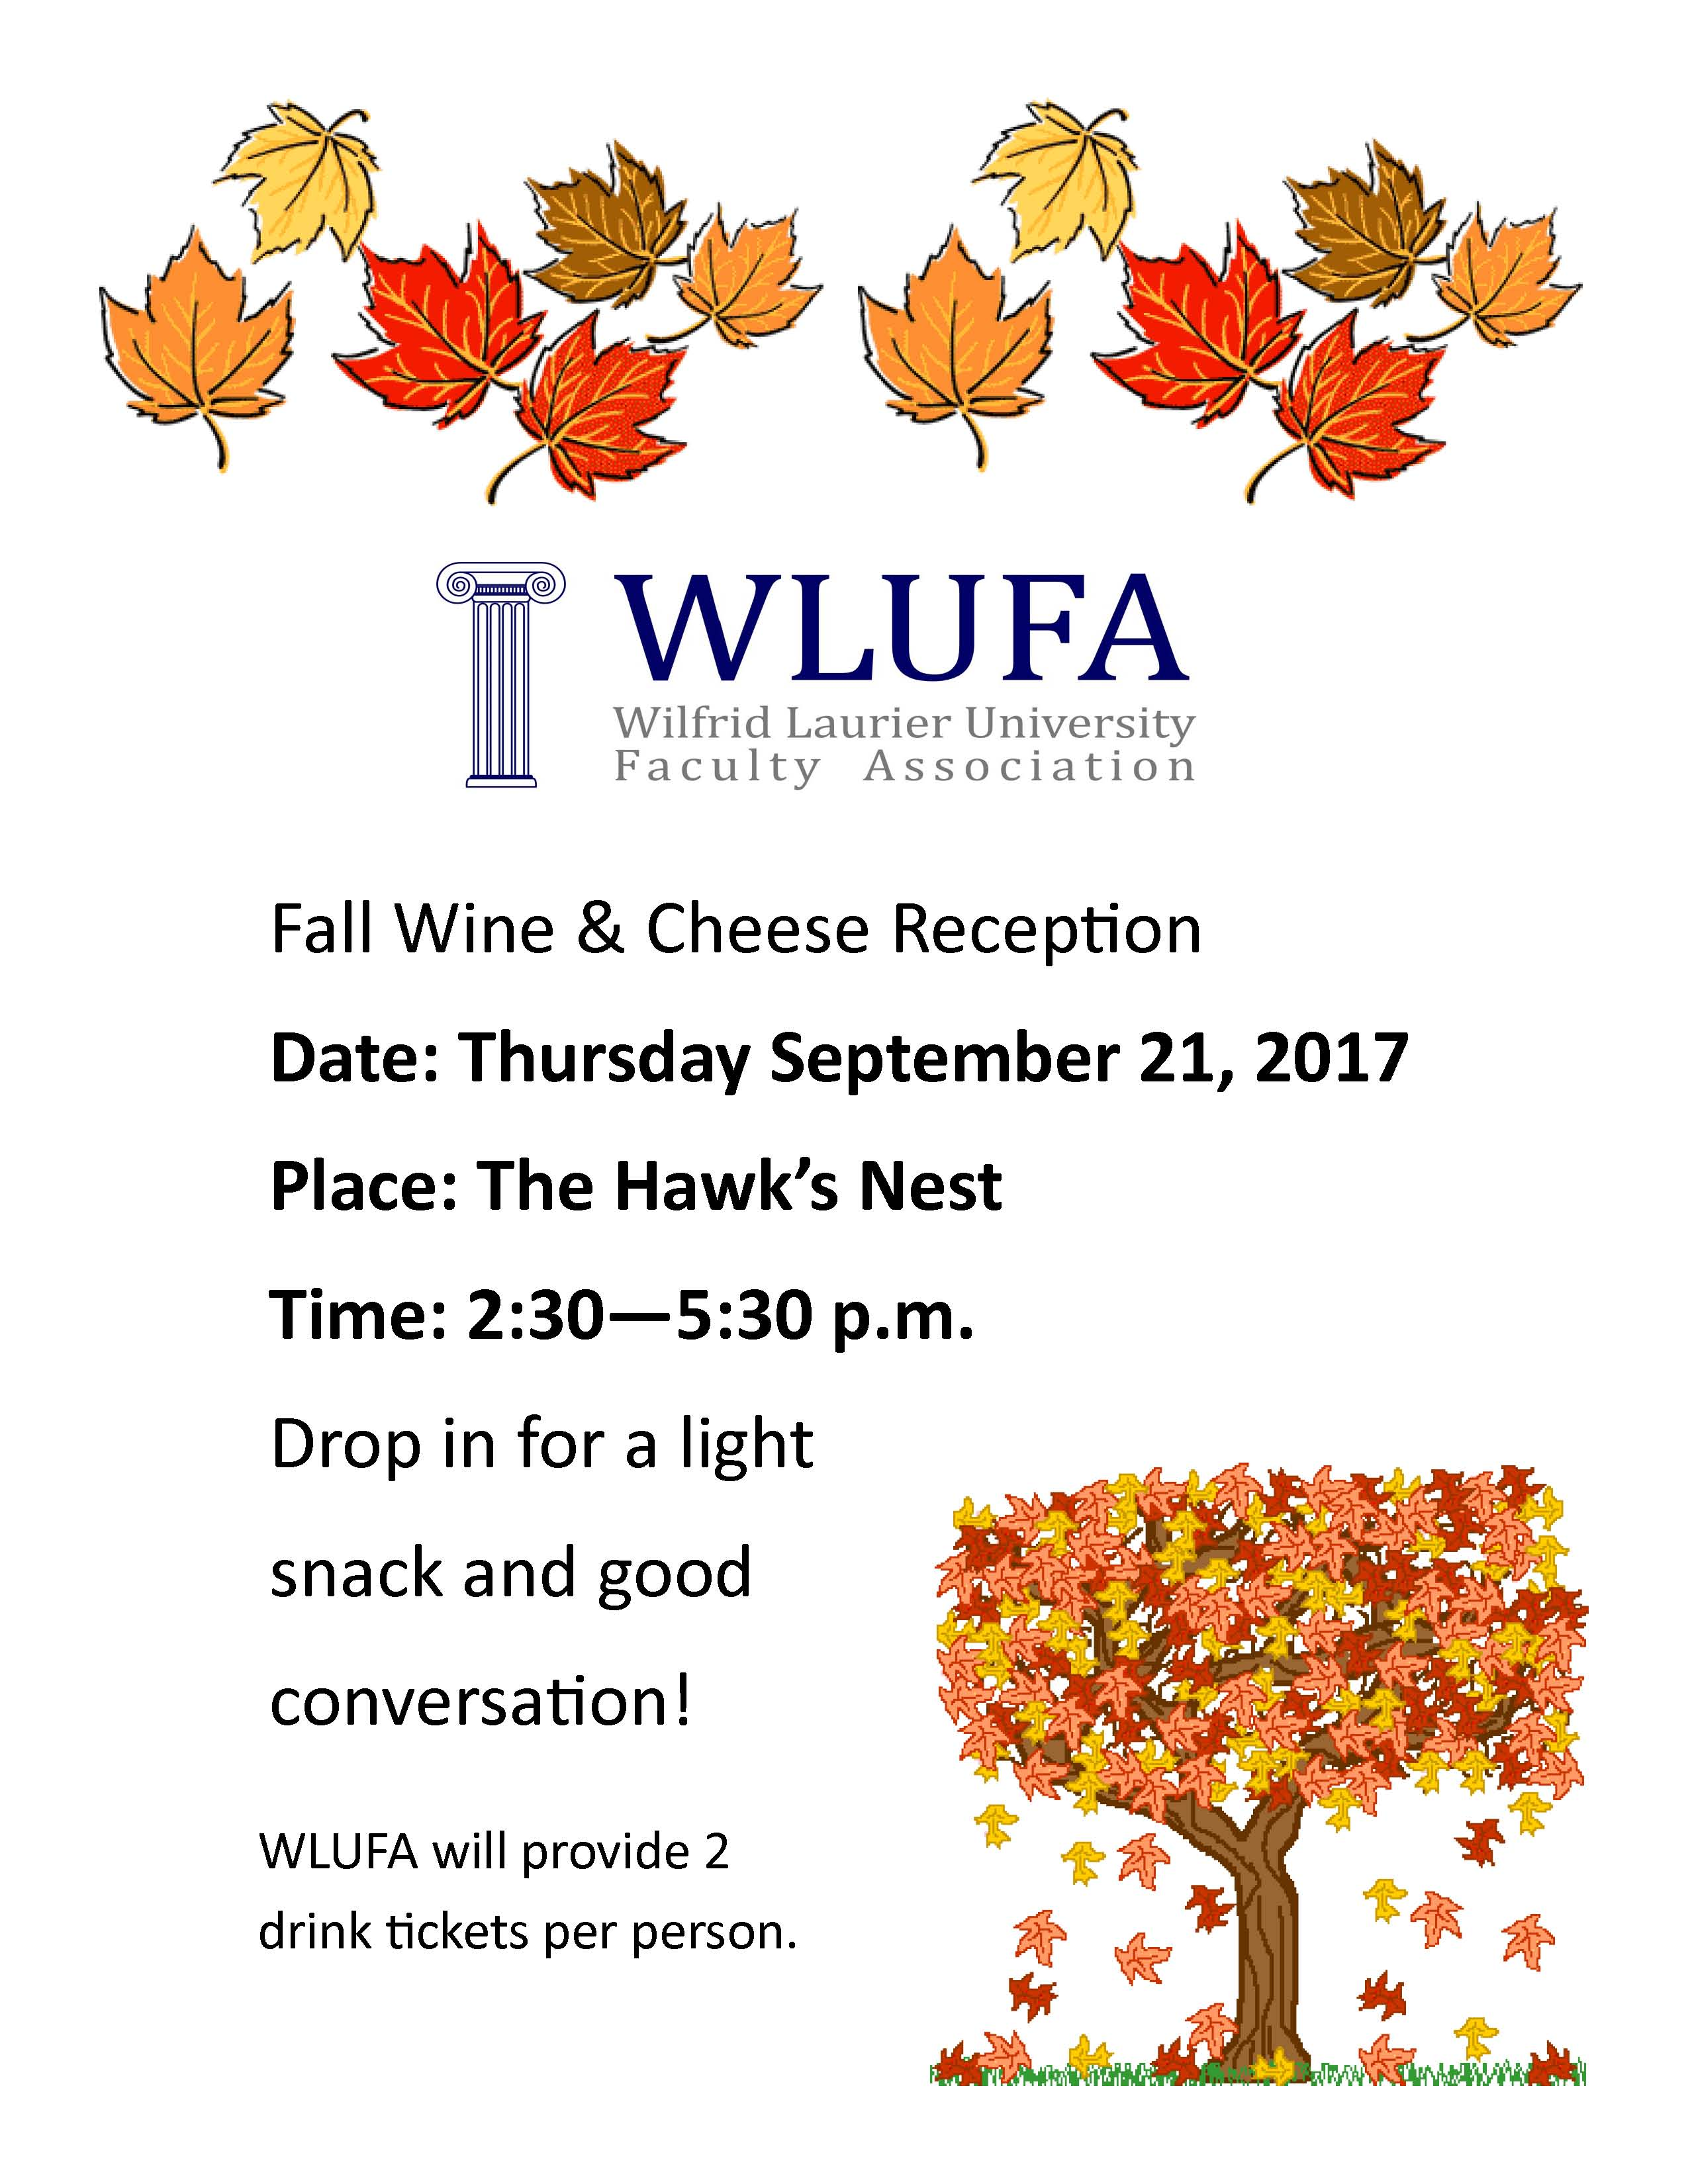 Fall Wine & Cheese Reception